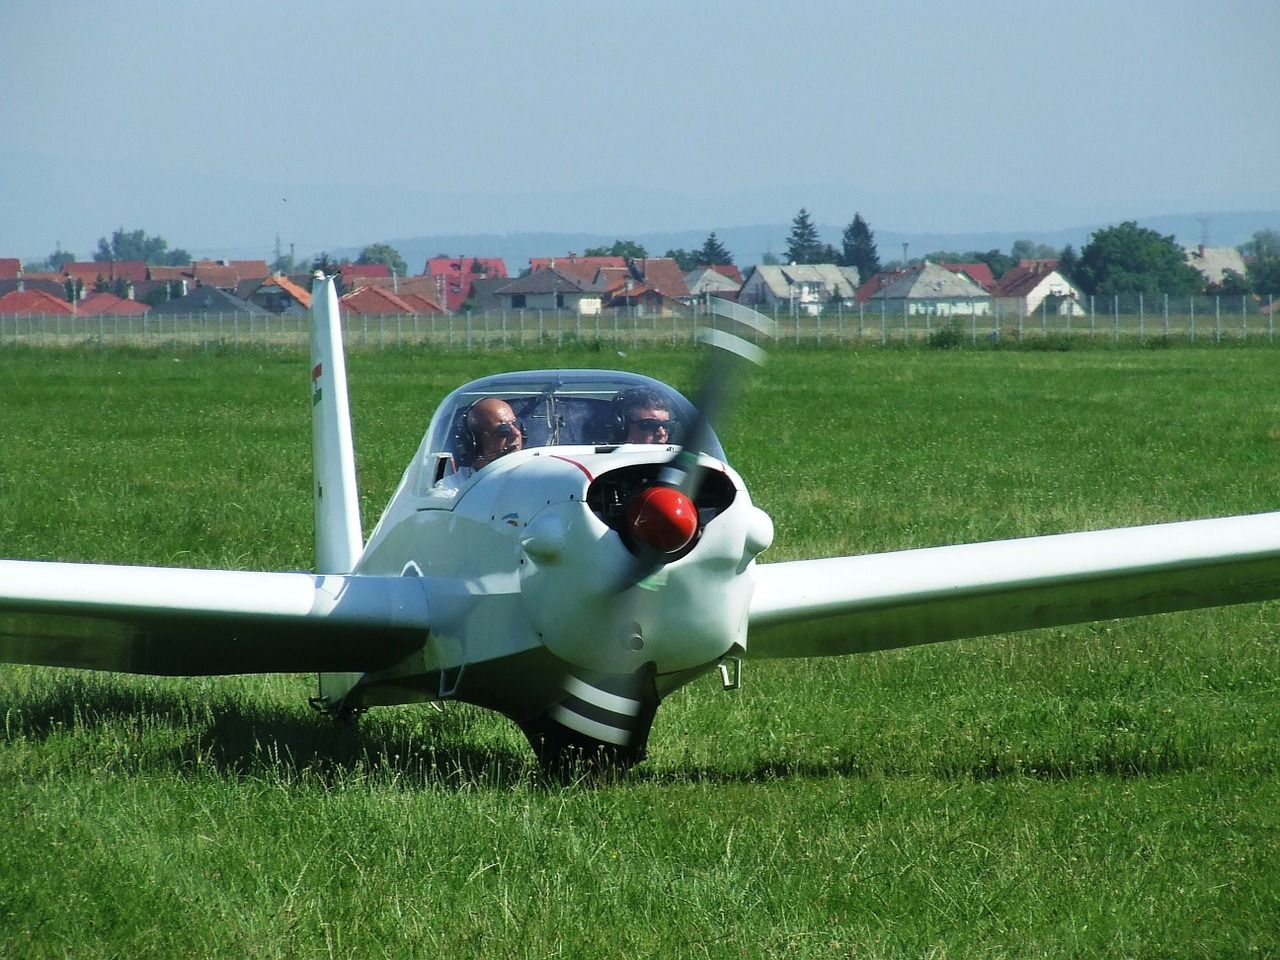 light-aircraft-344137_1280